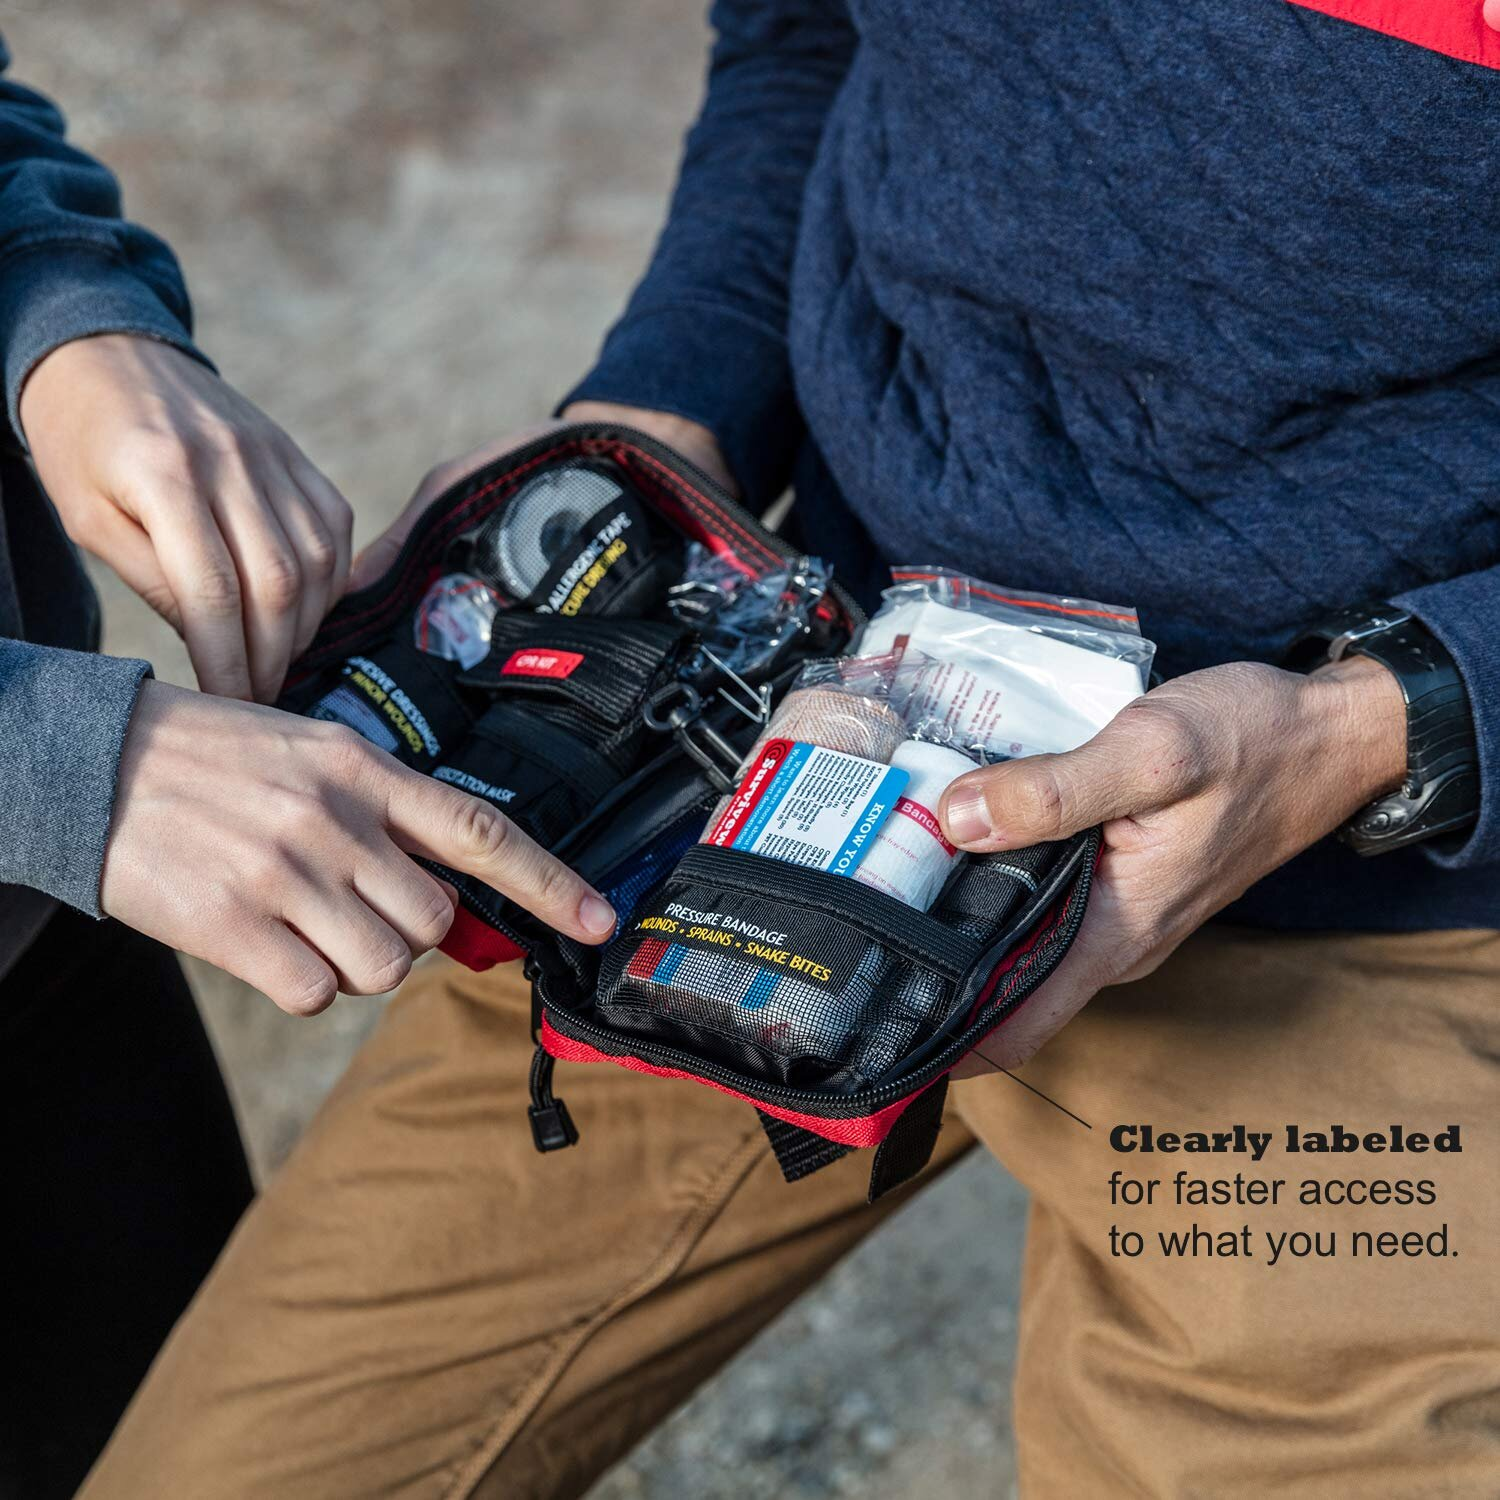 Surviveware-first-aid-kit-gifts-for-hikers.jpg